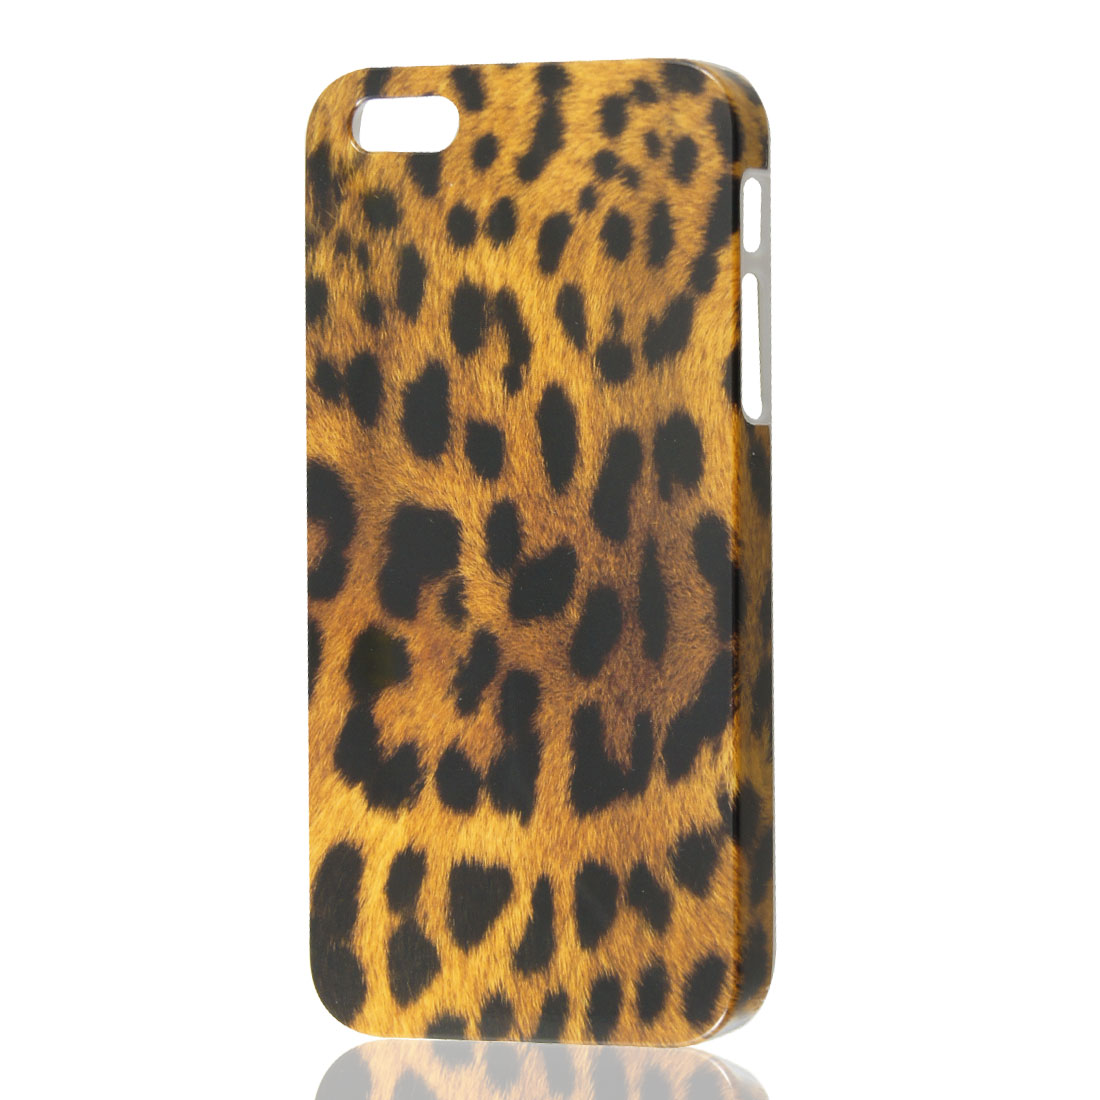 Brown Leopard Pattern Hard Back Skin Case Cover for iPhone 5 5G